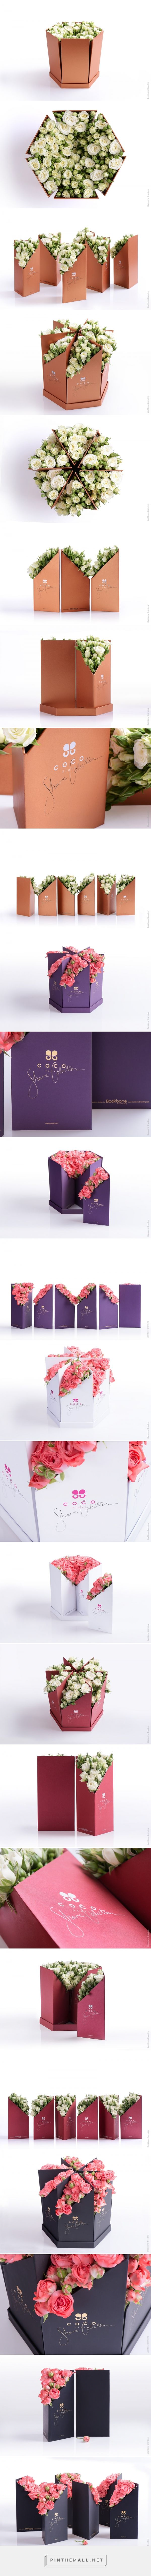 Coco Fiori - Flowers packaging made for sharing - Design by Backbone Branding (Armenia) - http://www.packagingoftheworld.com/2016/07/coco-fiori-share-collection.html                                                                                                                                                      Más